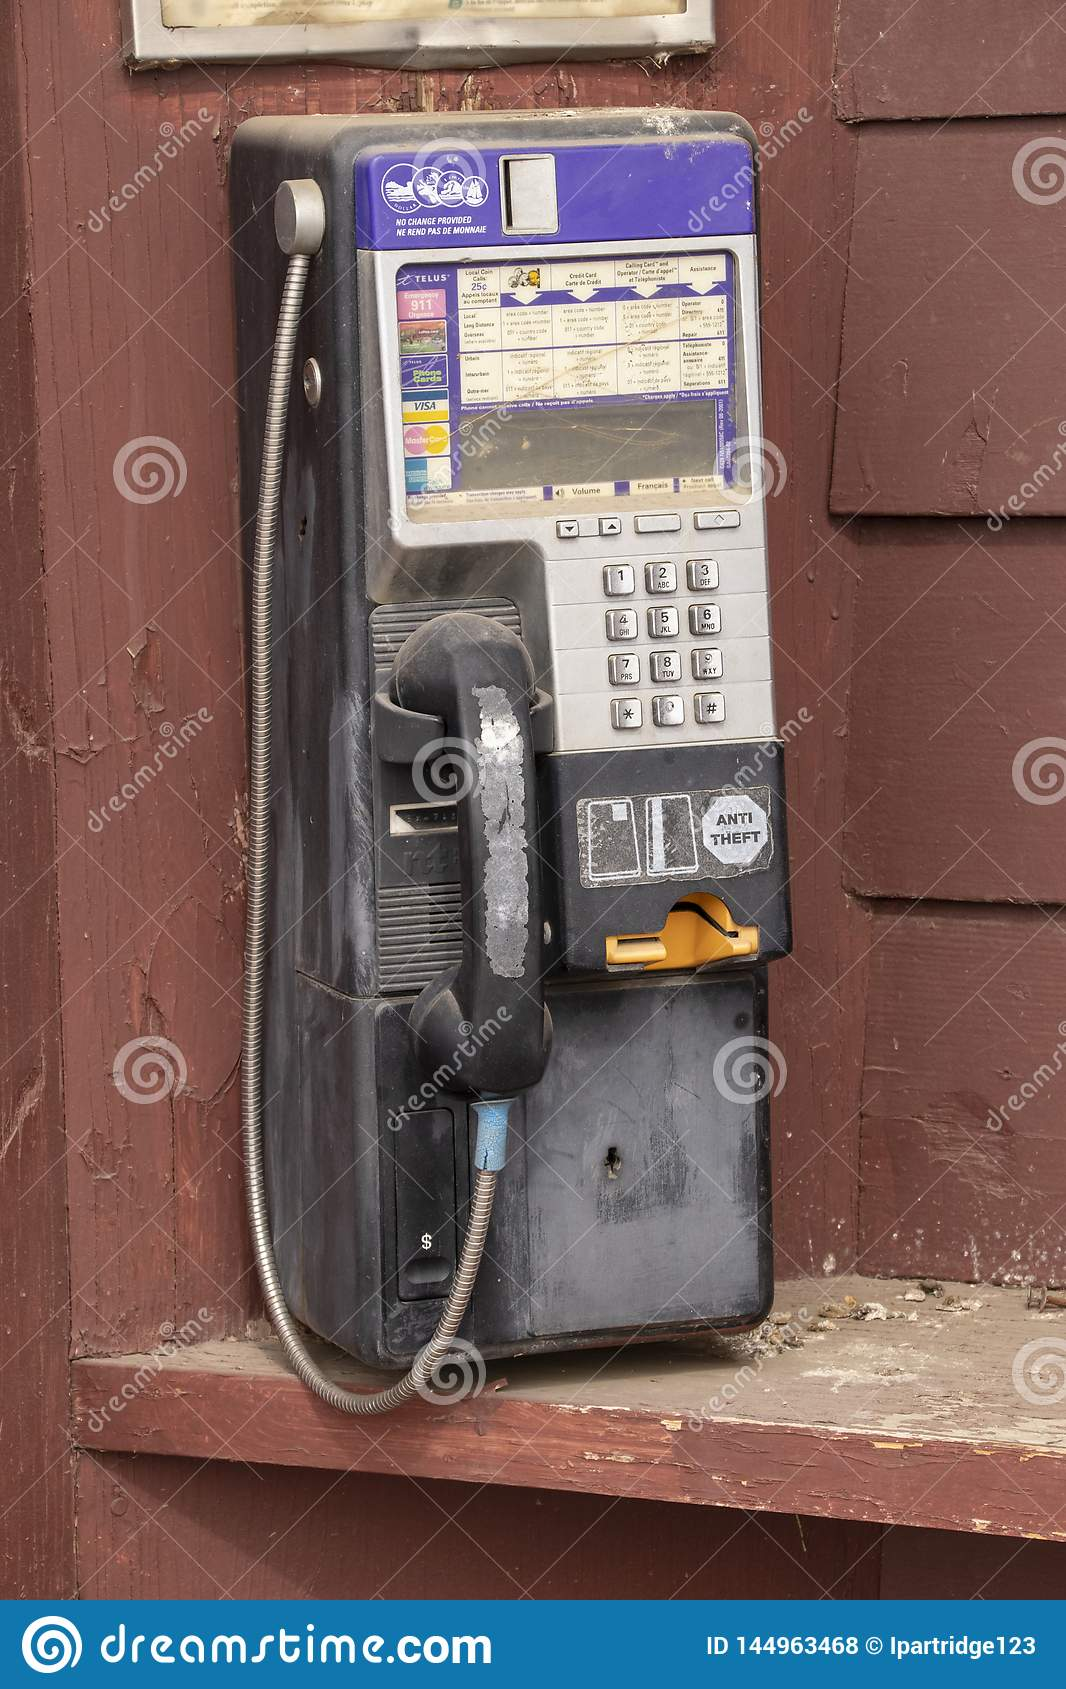 A payphone on a wood background